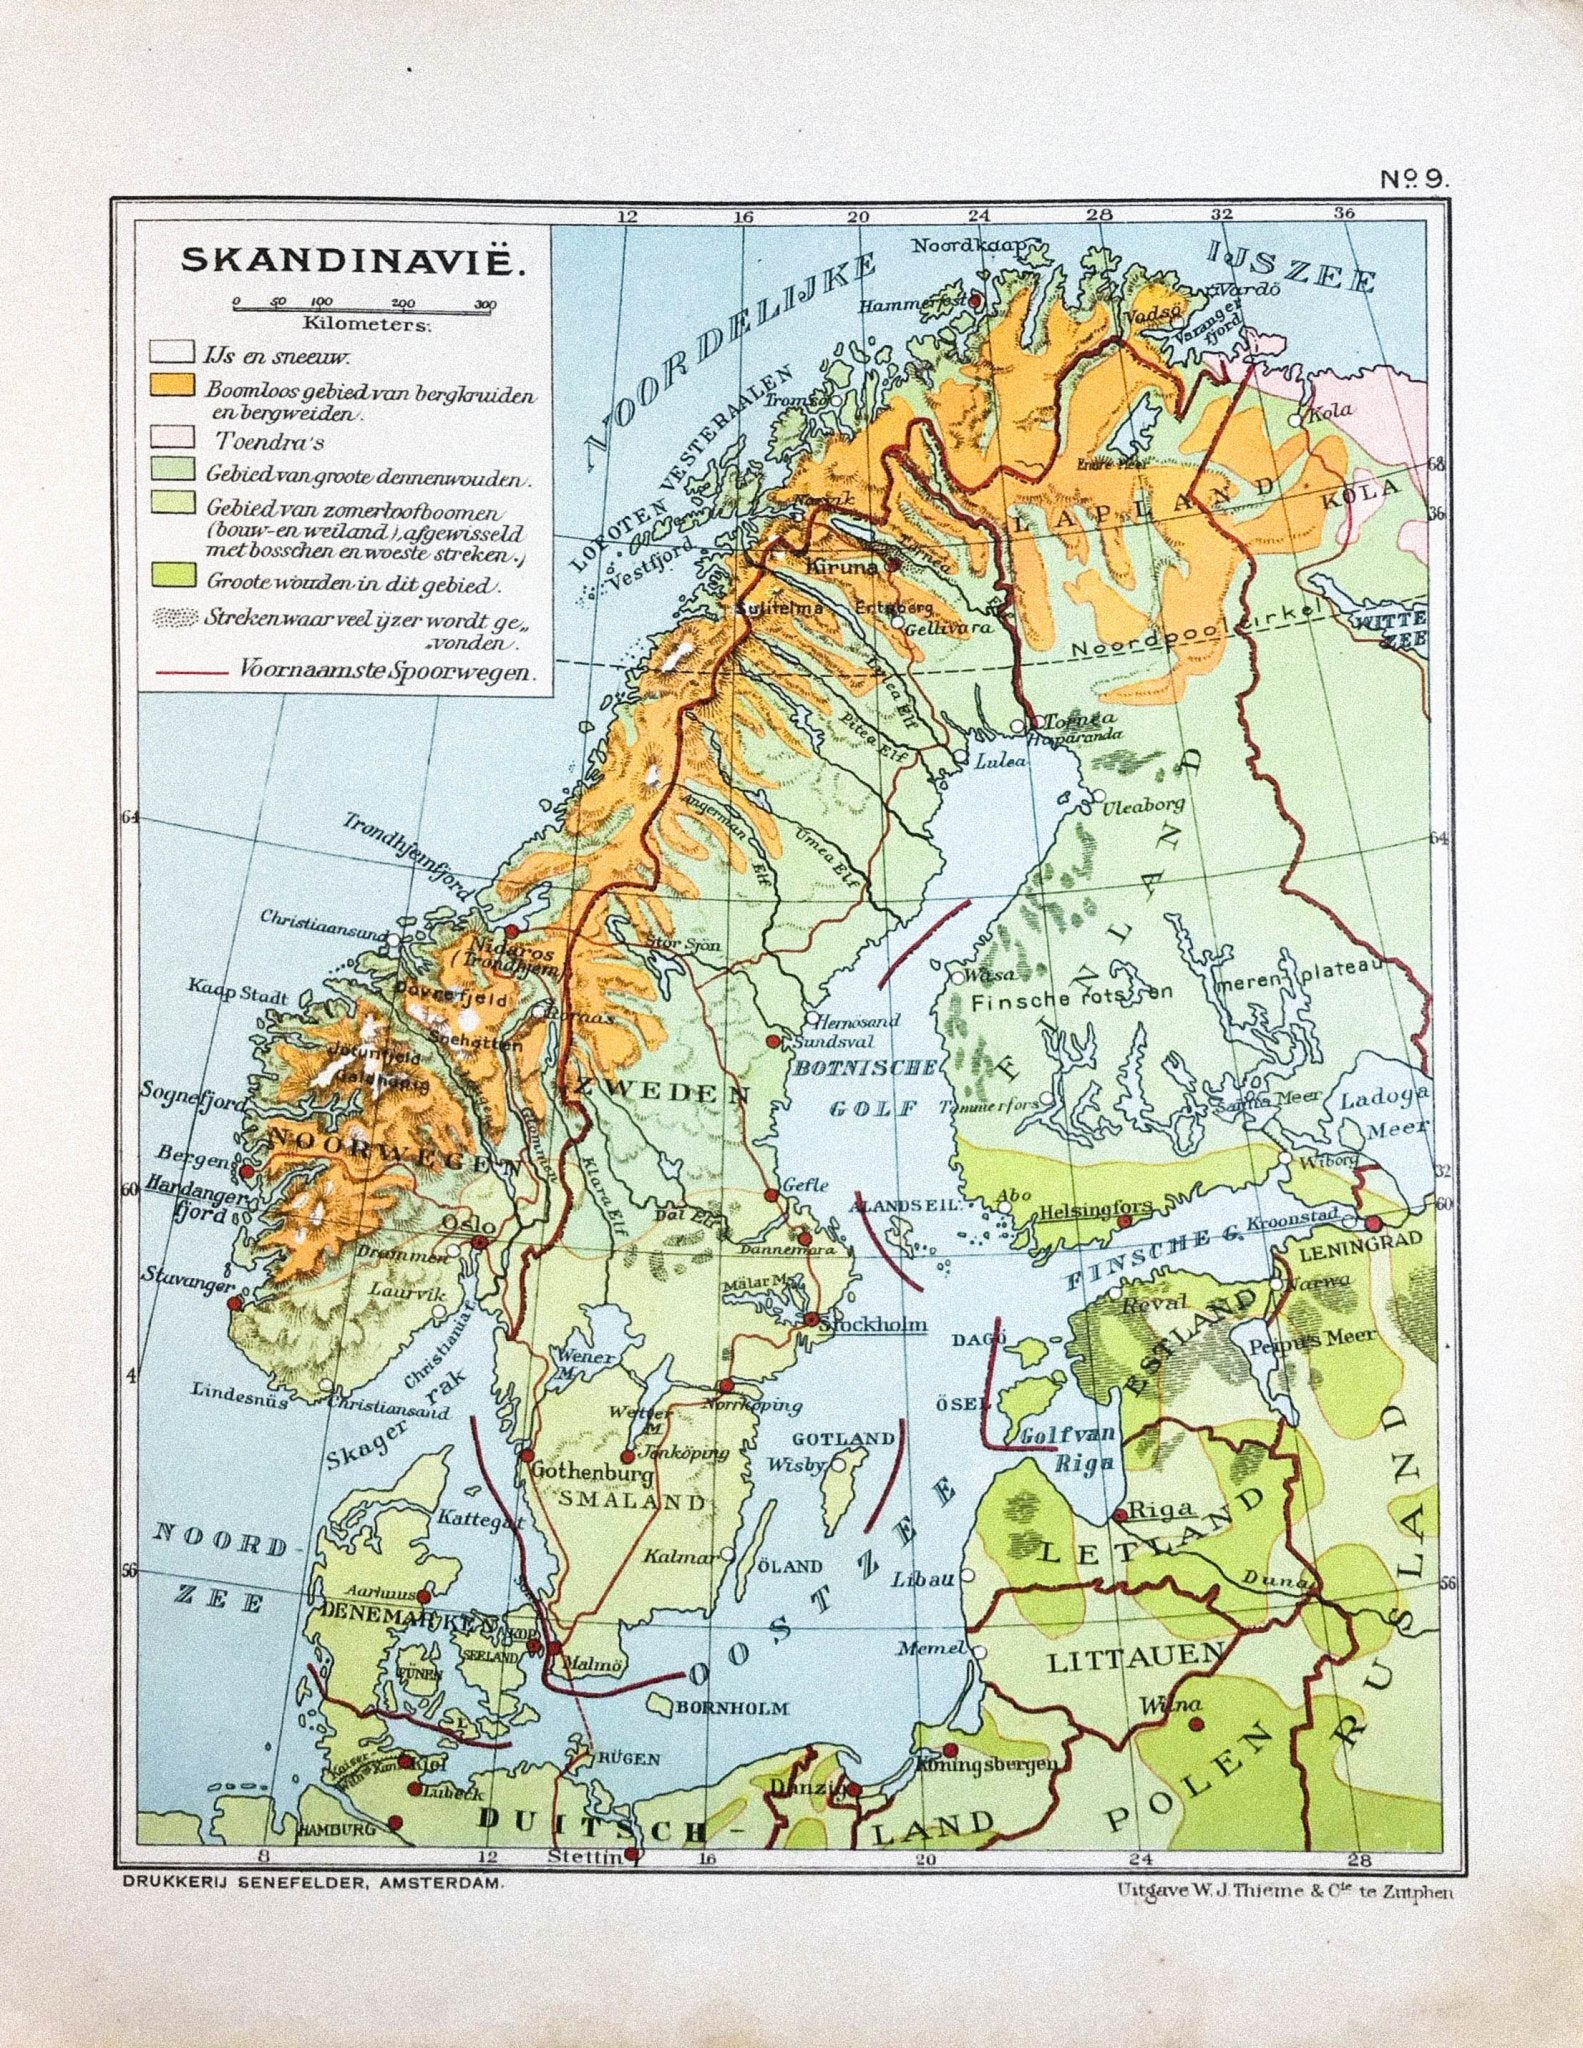 Scandinavië - 1930 - World of Maps & Travel